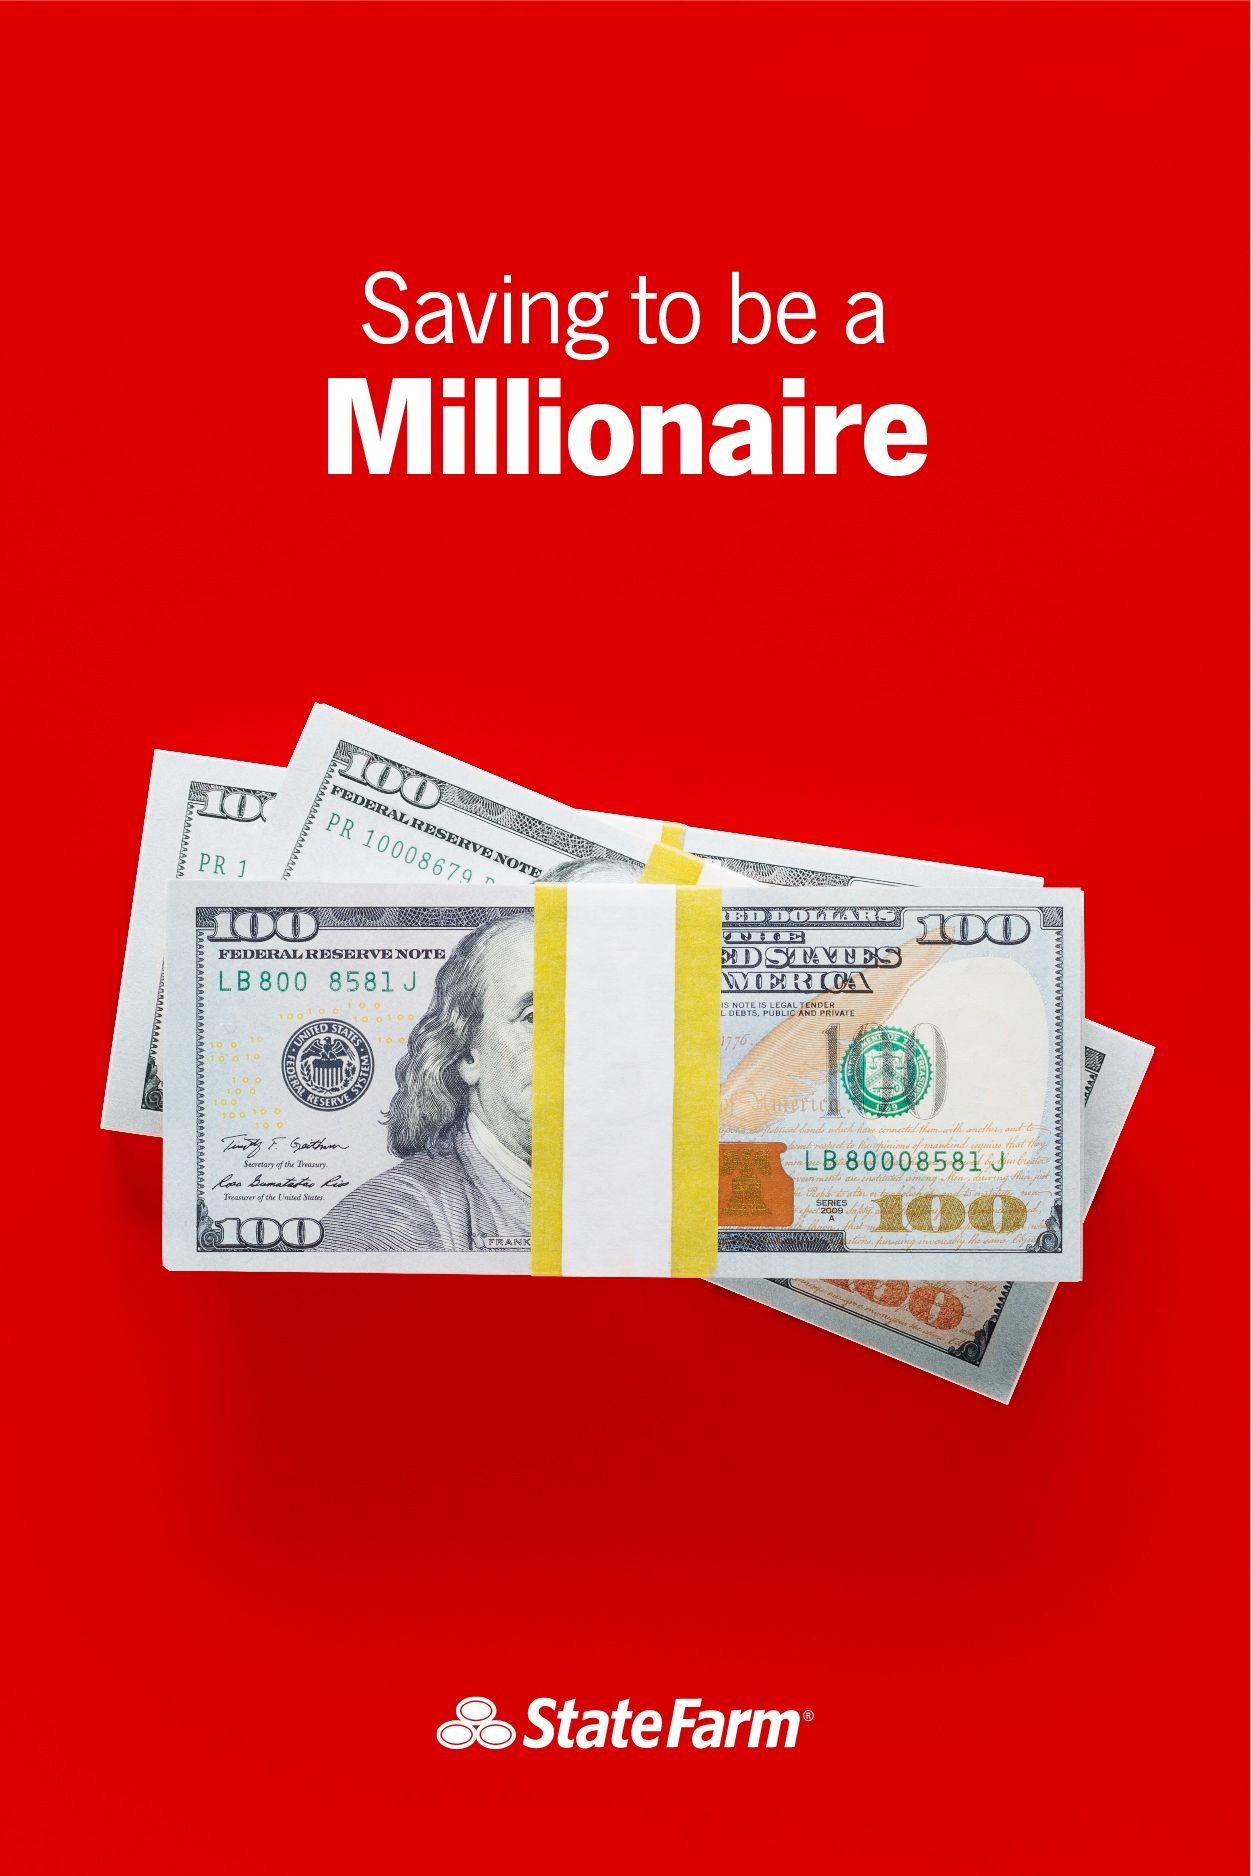 Who Wants to be a Millionaire? Find Out How Long it Takes ...